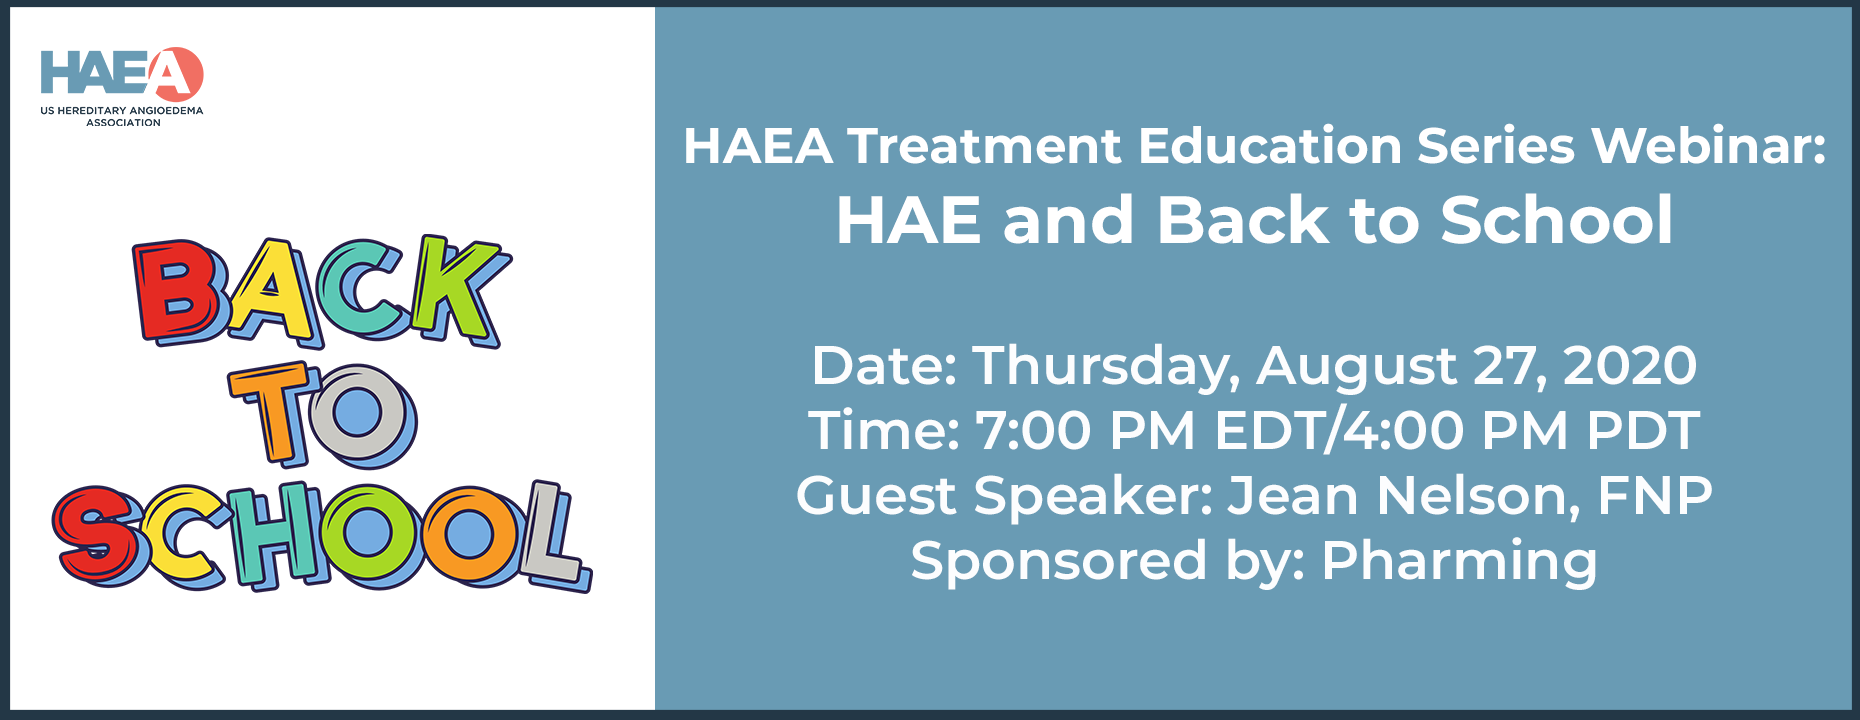 HAEA Treatment Education Series Webinar: HAE and Back to School